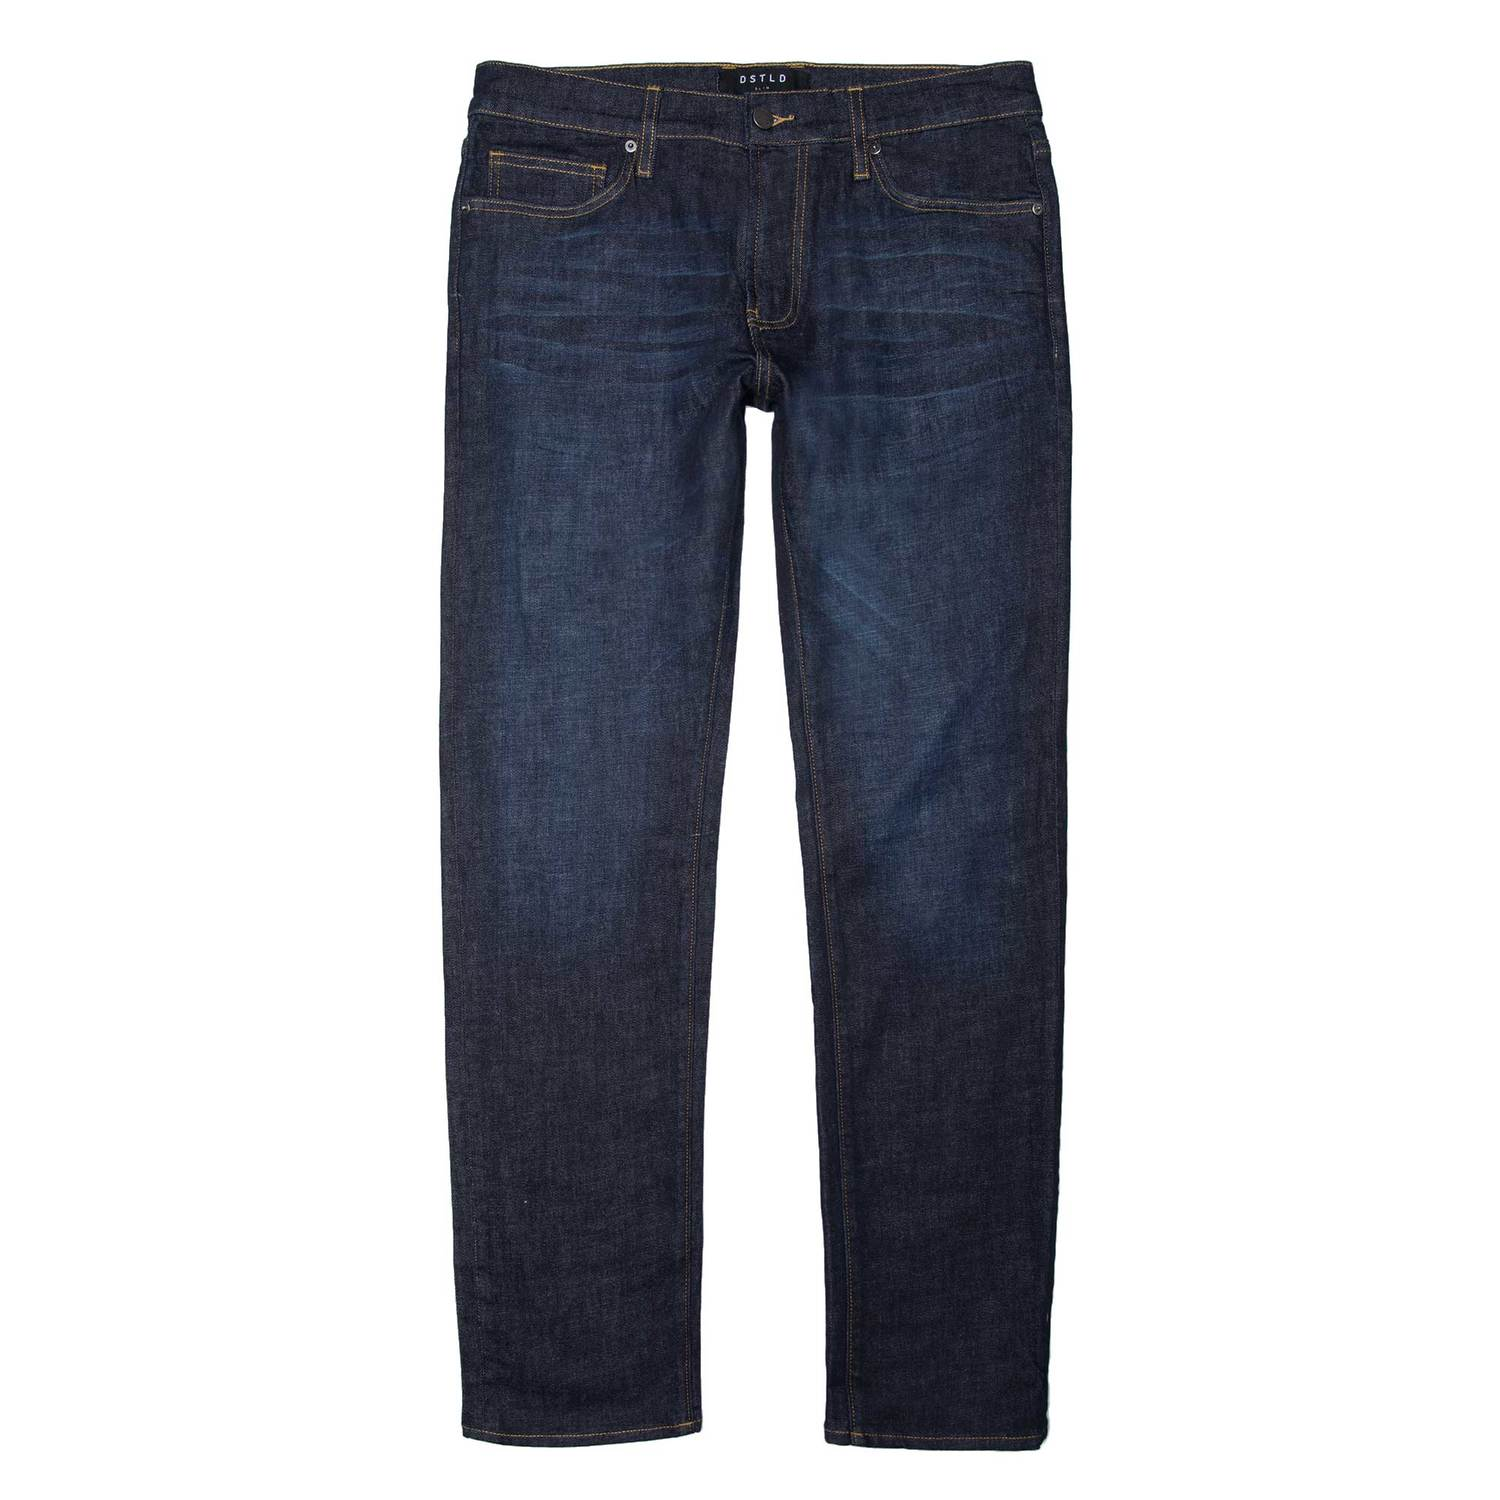 dstld mens-slim-jeans-in-six-month-dark-worn-product.jpg